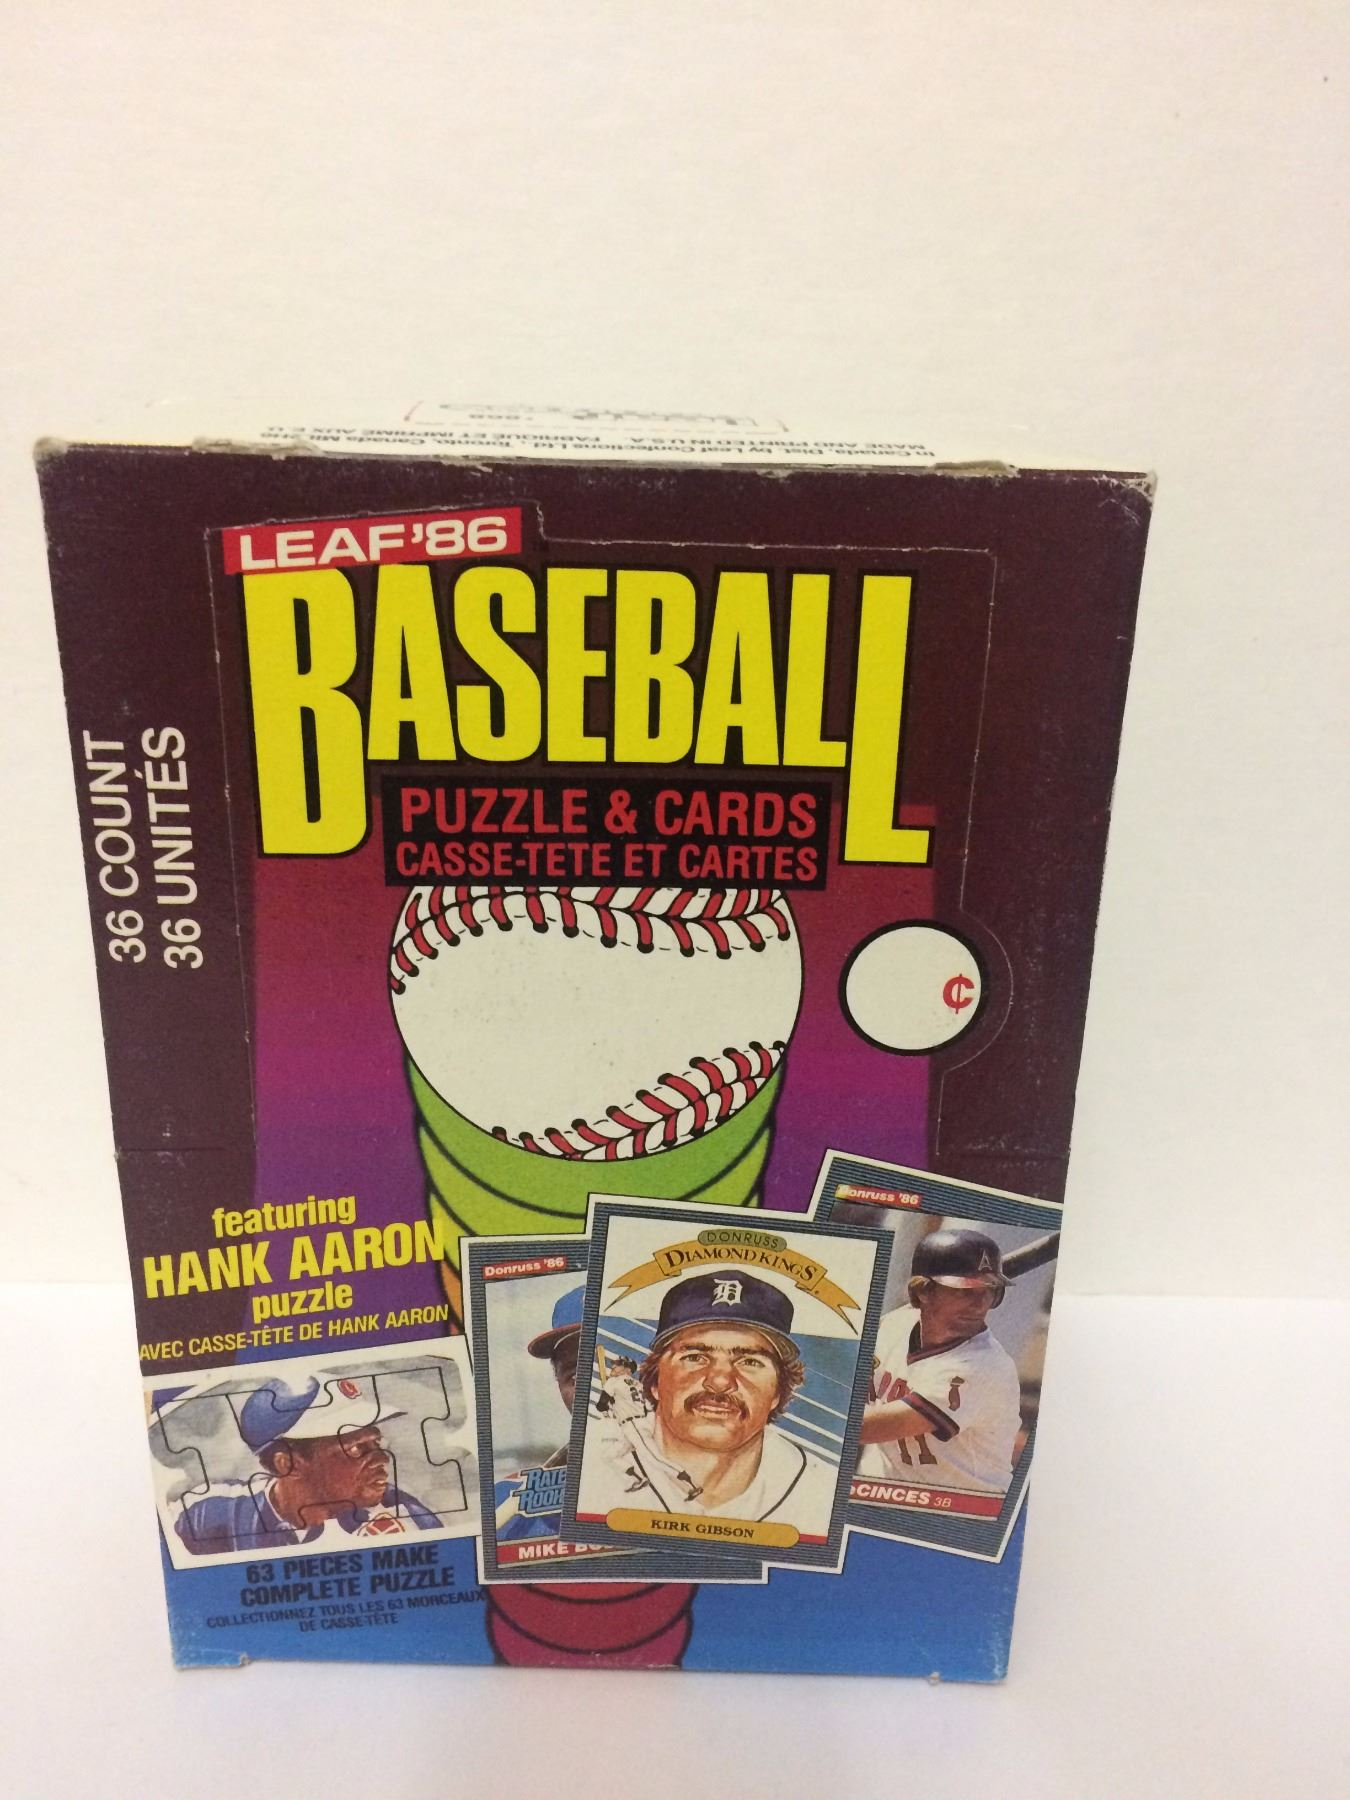 1986 Leaf Baseball Puzzle Cards Set 36 Units Featuring Hank Aaron Puzzle